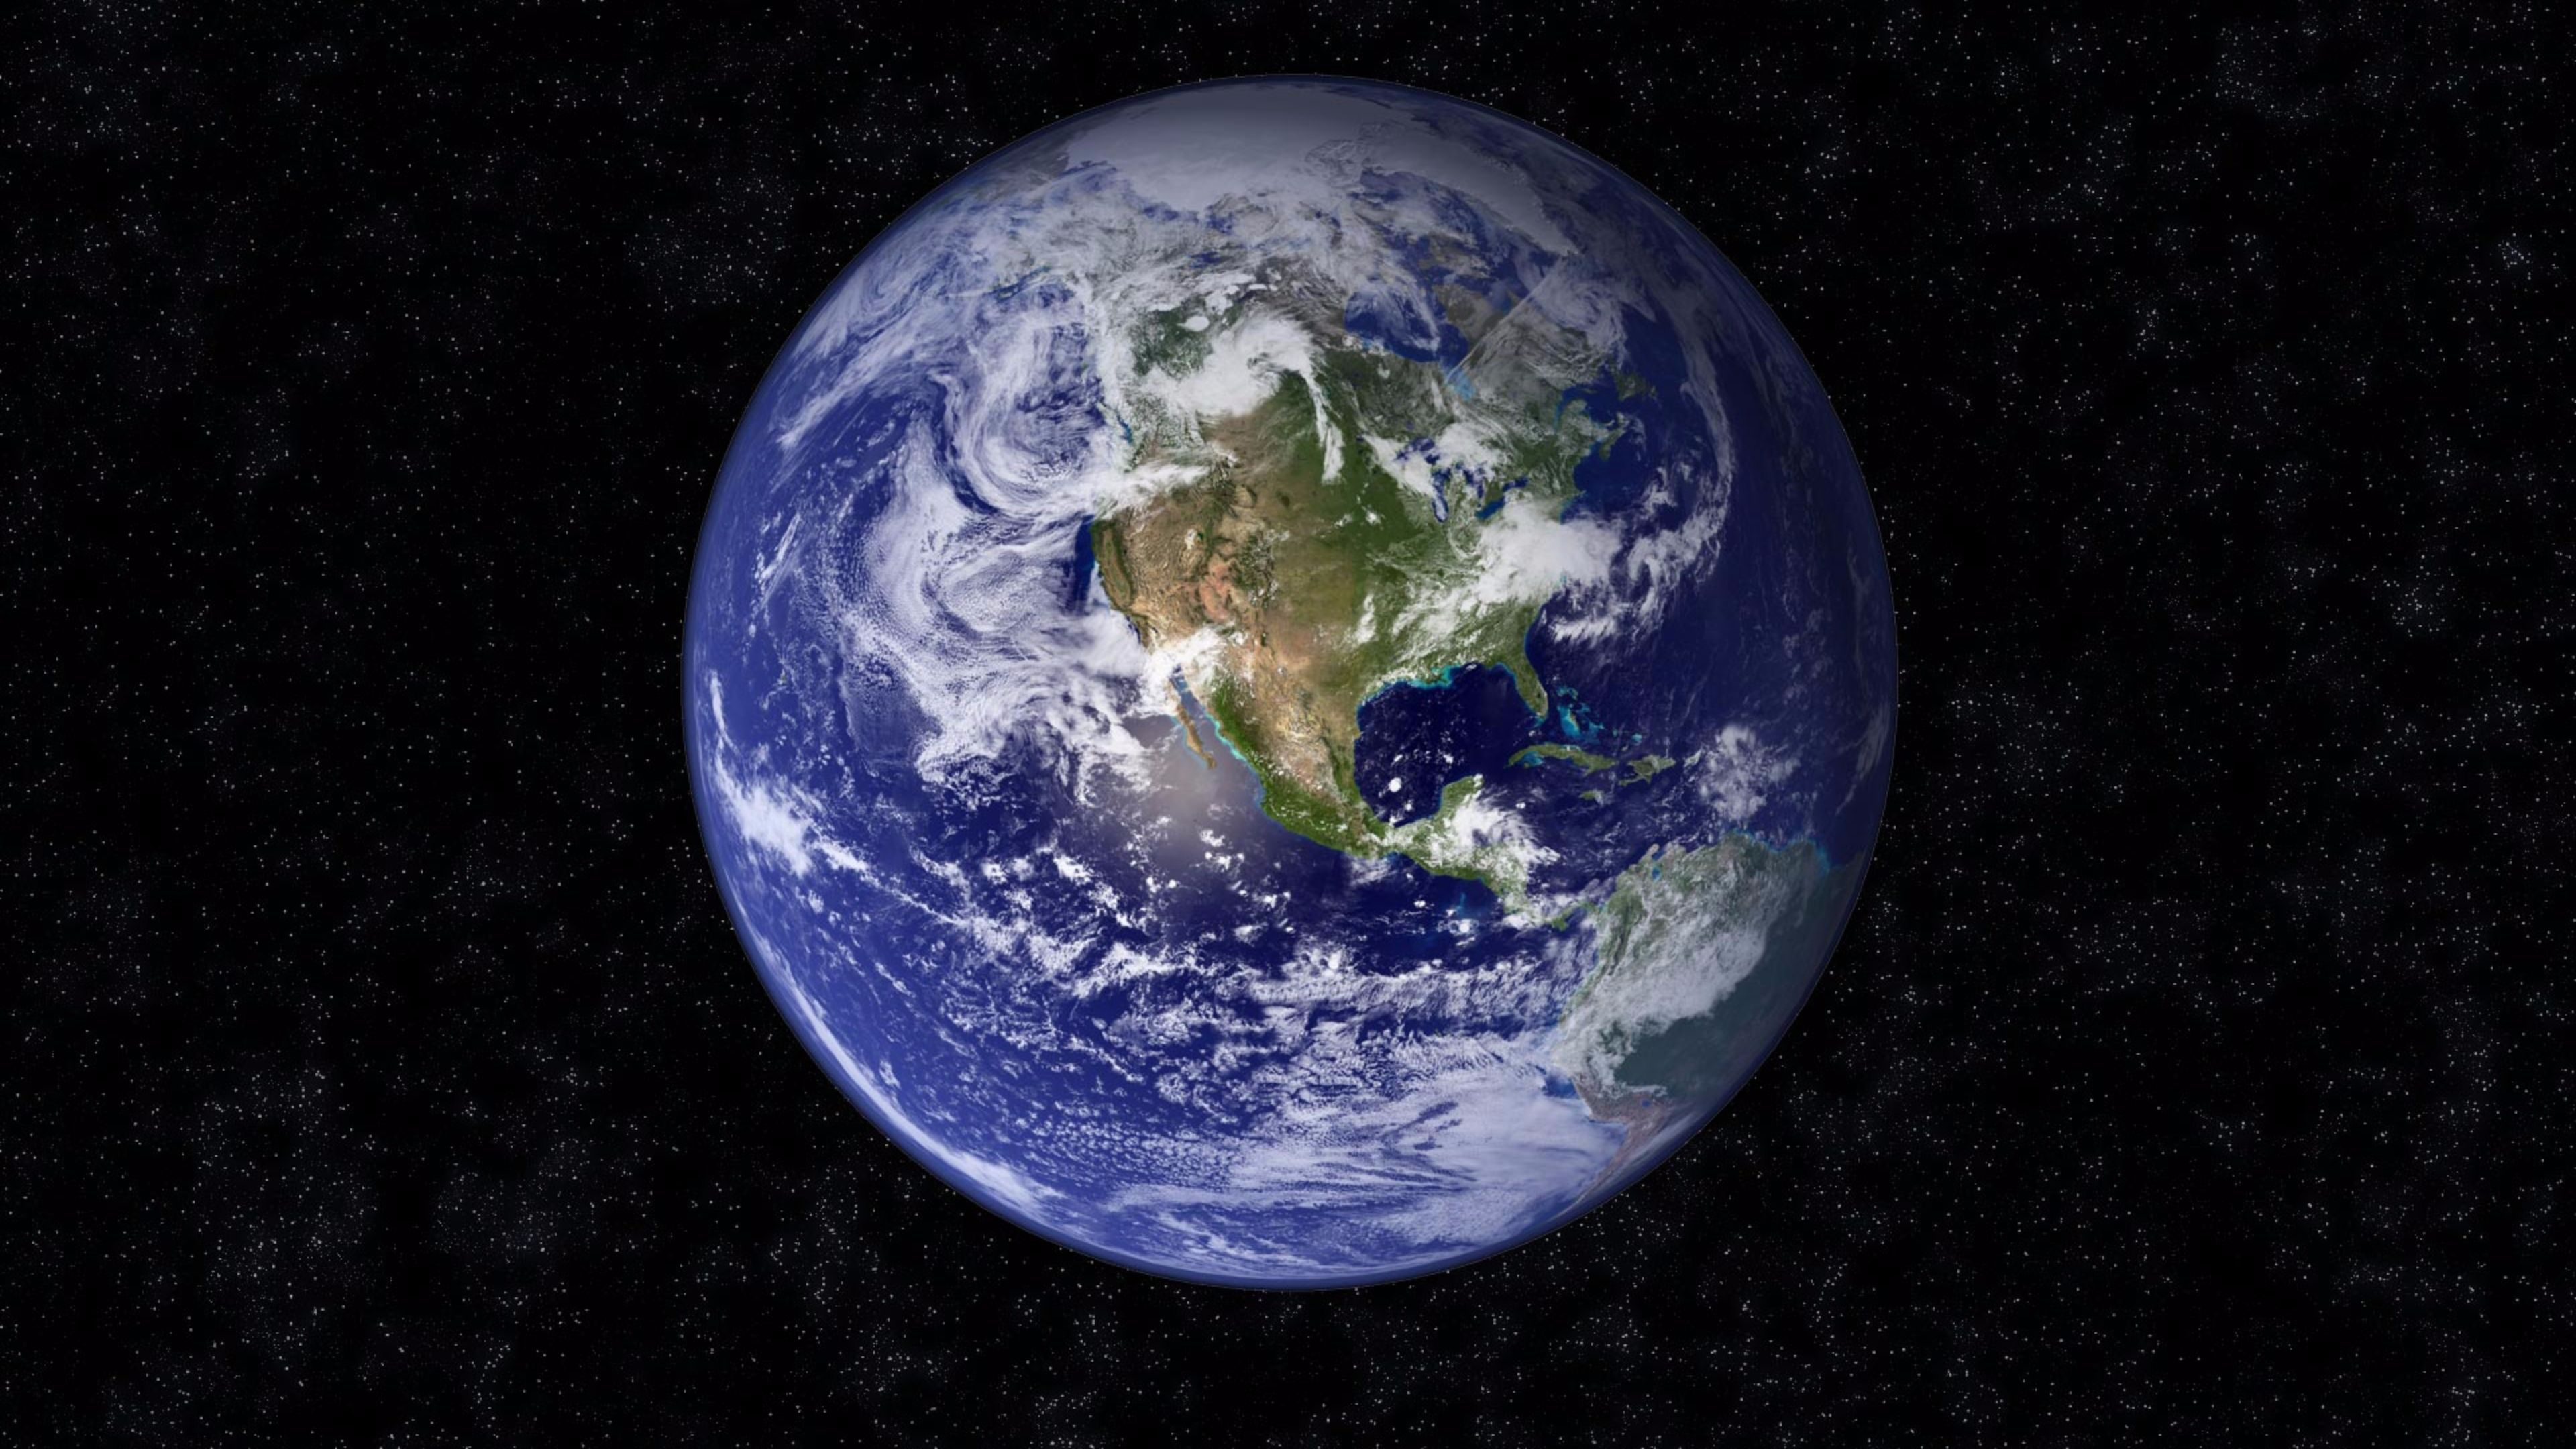 Earth Wallpaper Full Hd: 4K Planet Earth Wallpapers High Quality